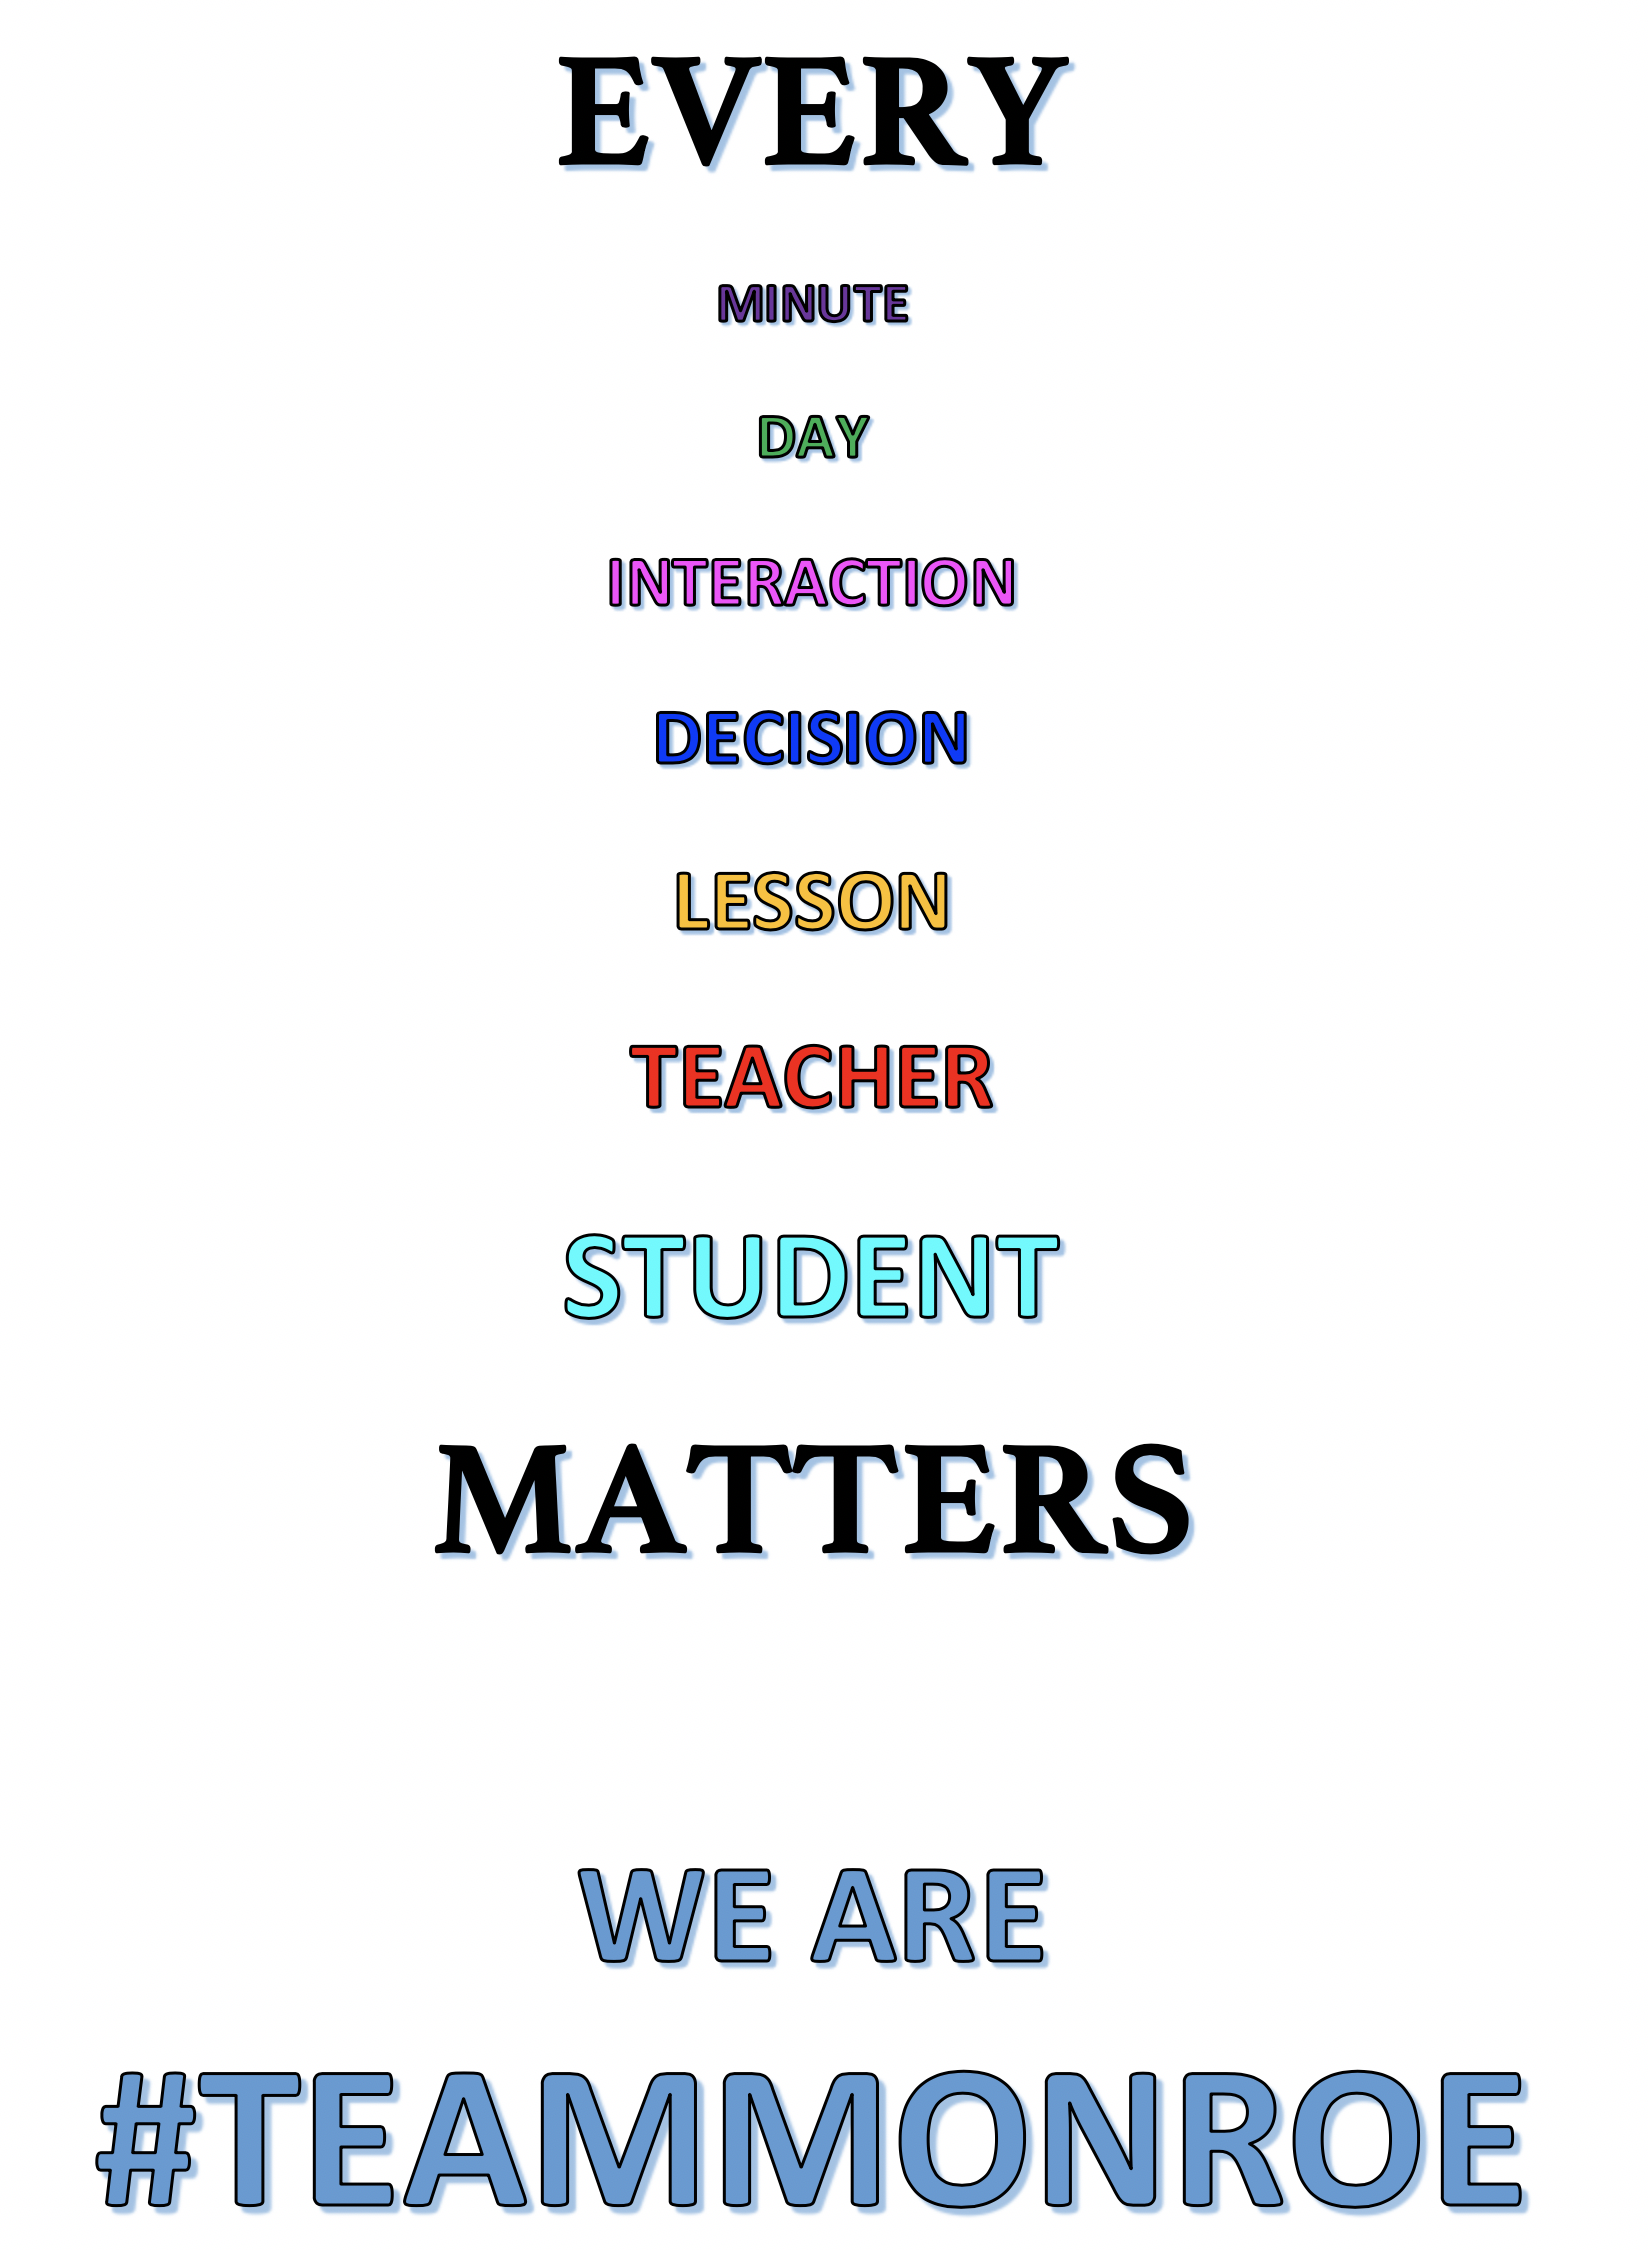 Every Student Matters